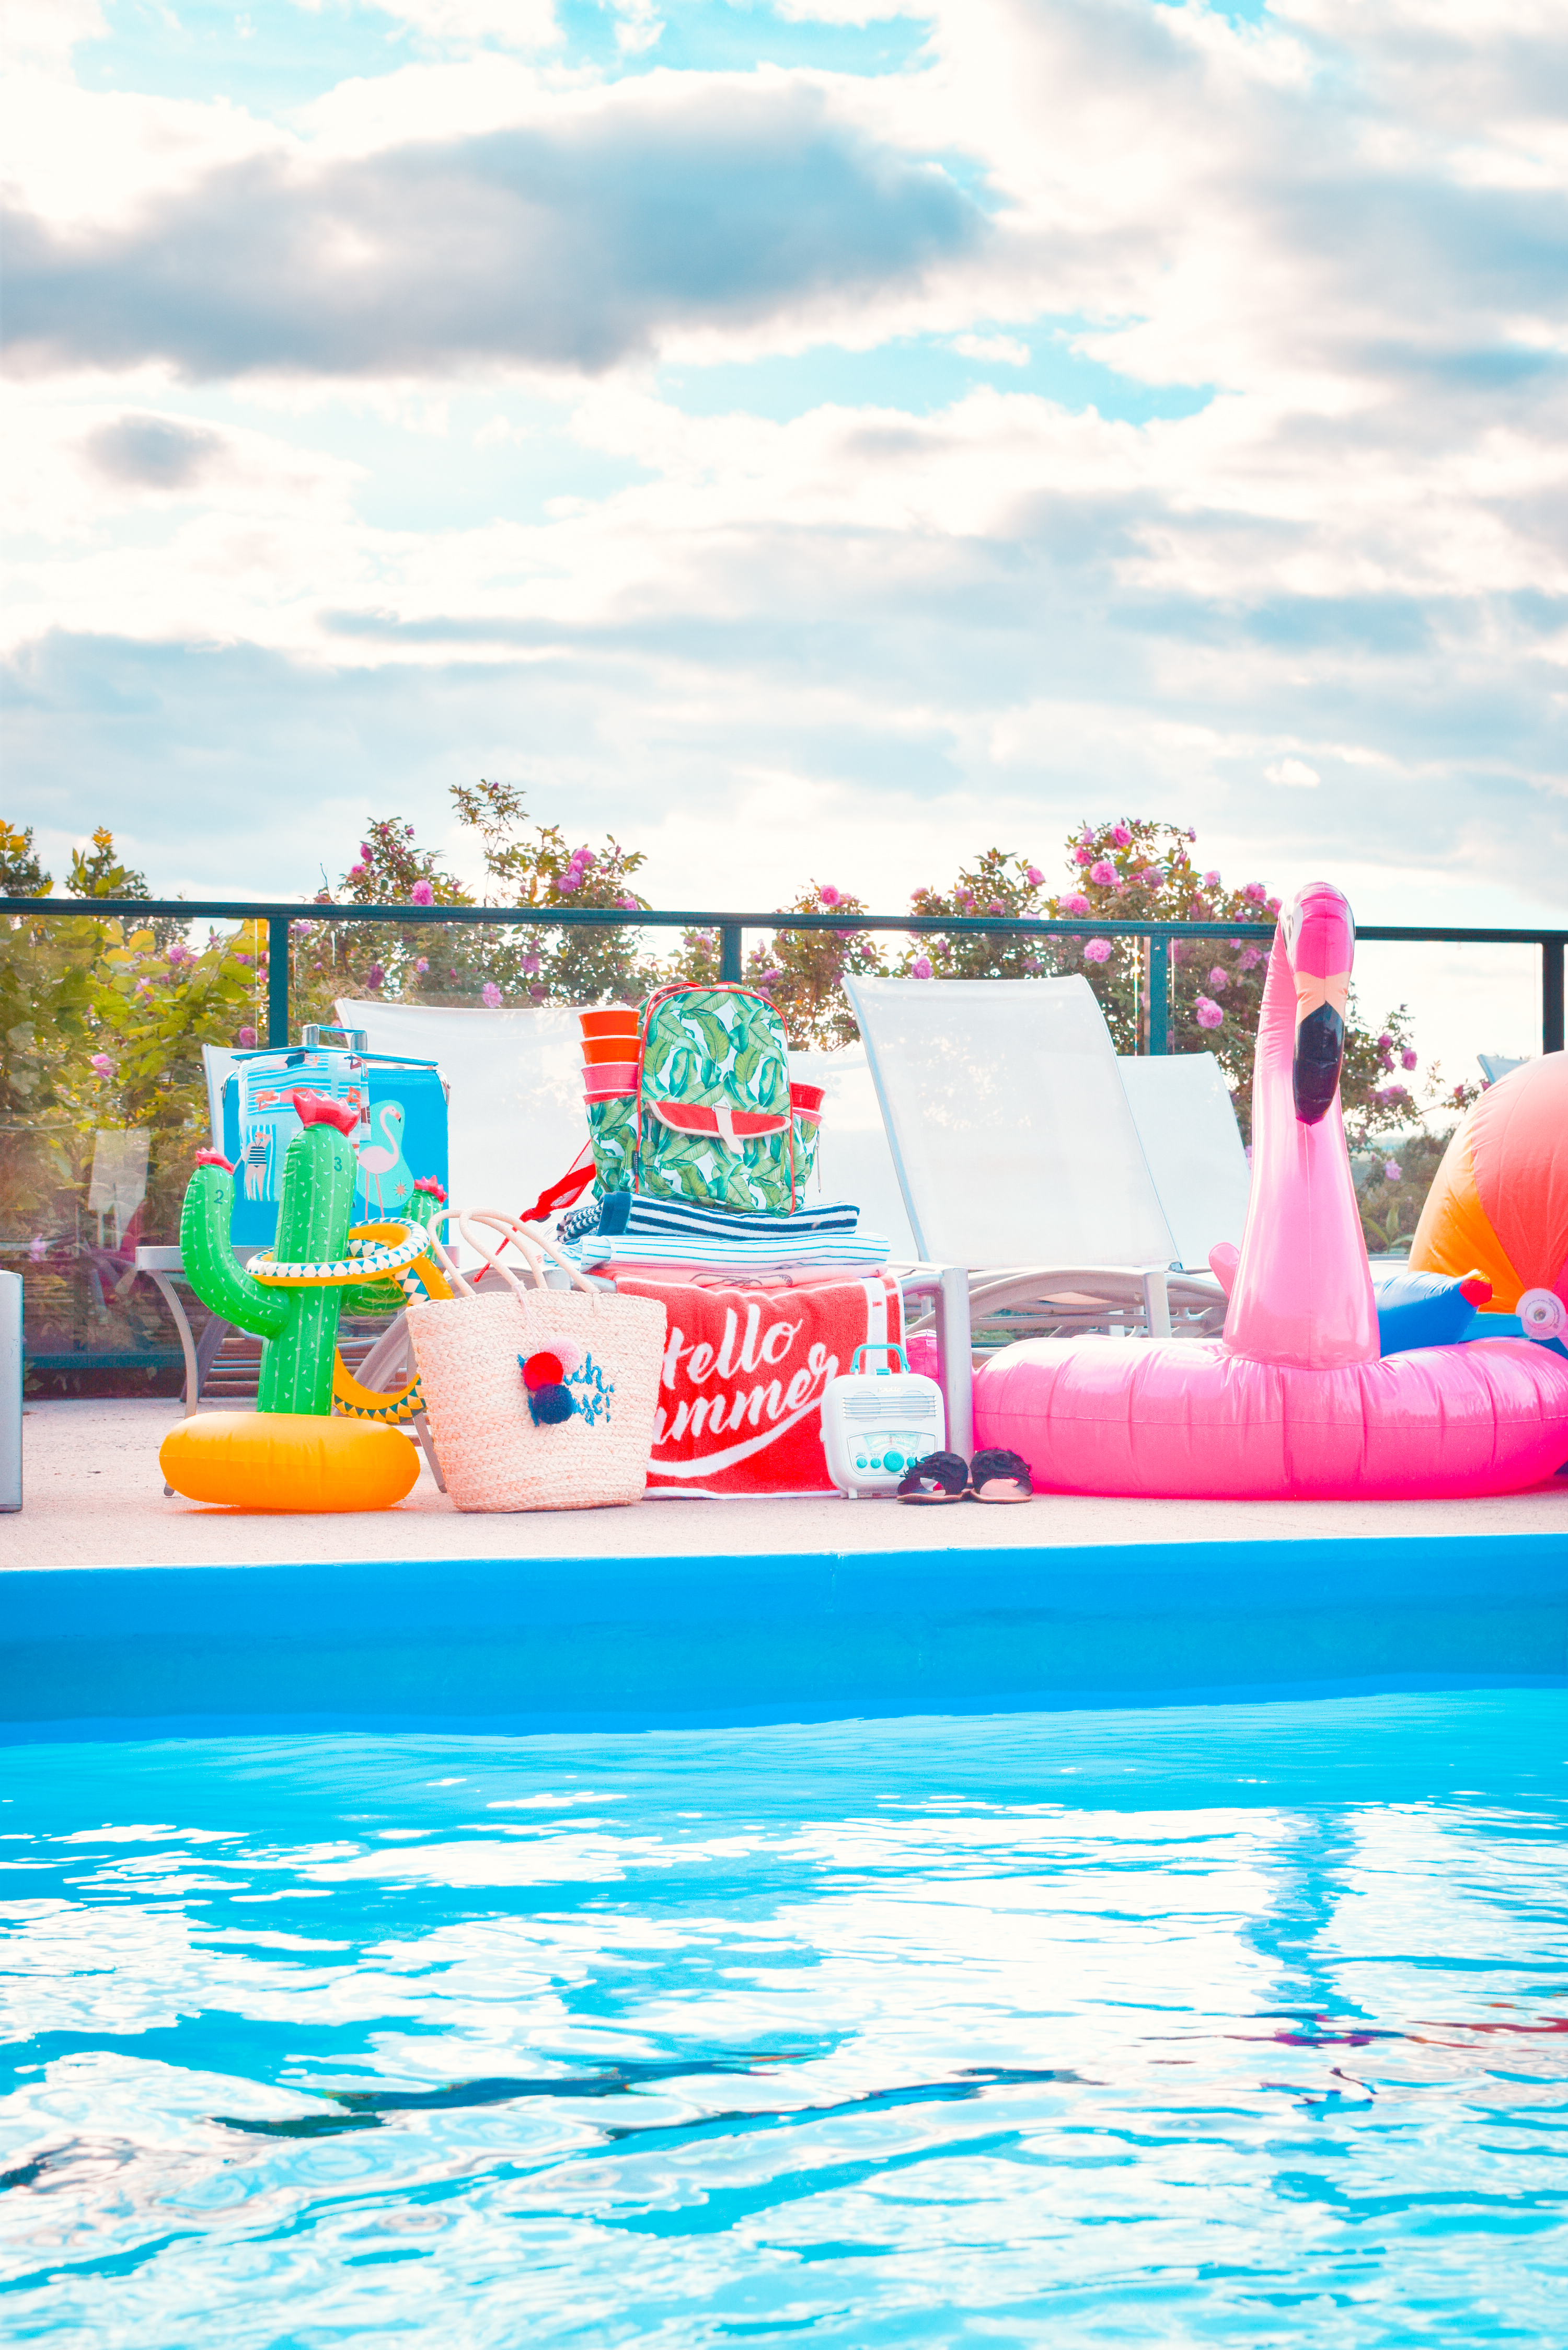 Anyone can host a snazzy pool party at their own home, but how realistic is that for the general population? If you're also a millennial, pool ownership any day soon is straight up - not in the cards. Instead I thought I'd show you guys how my crew and I throw a public pool party with Homesense.